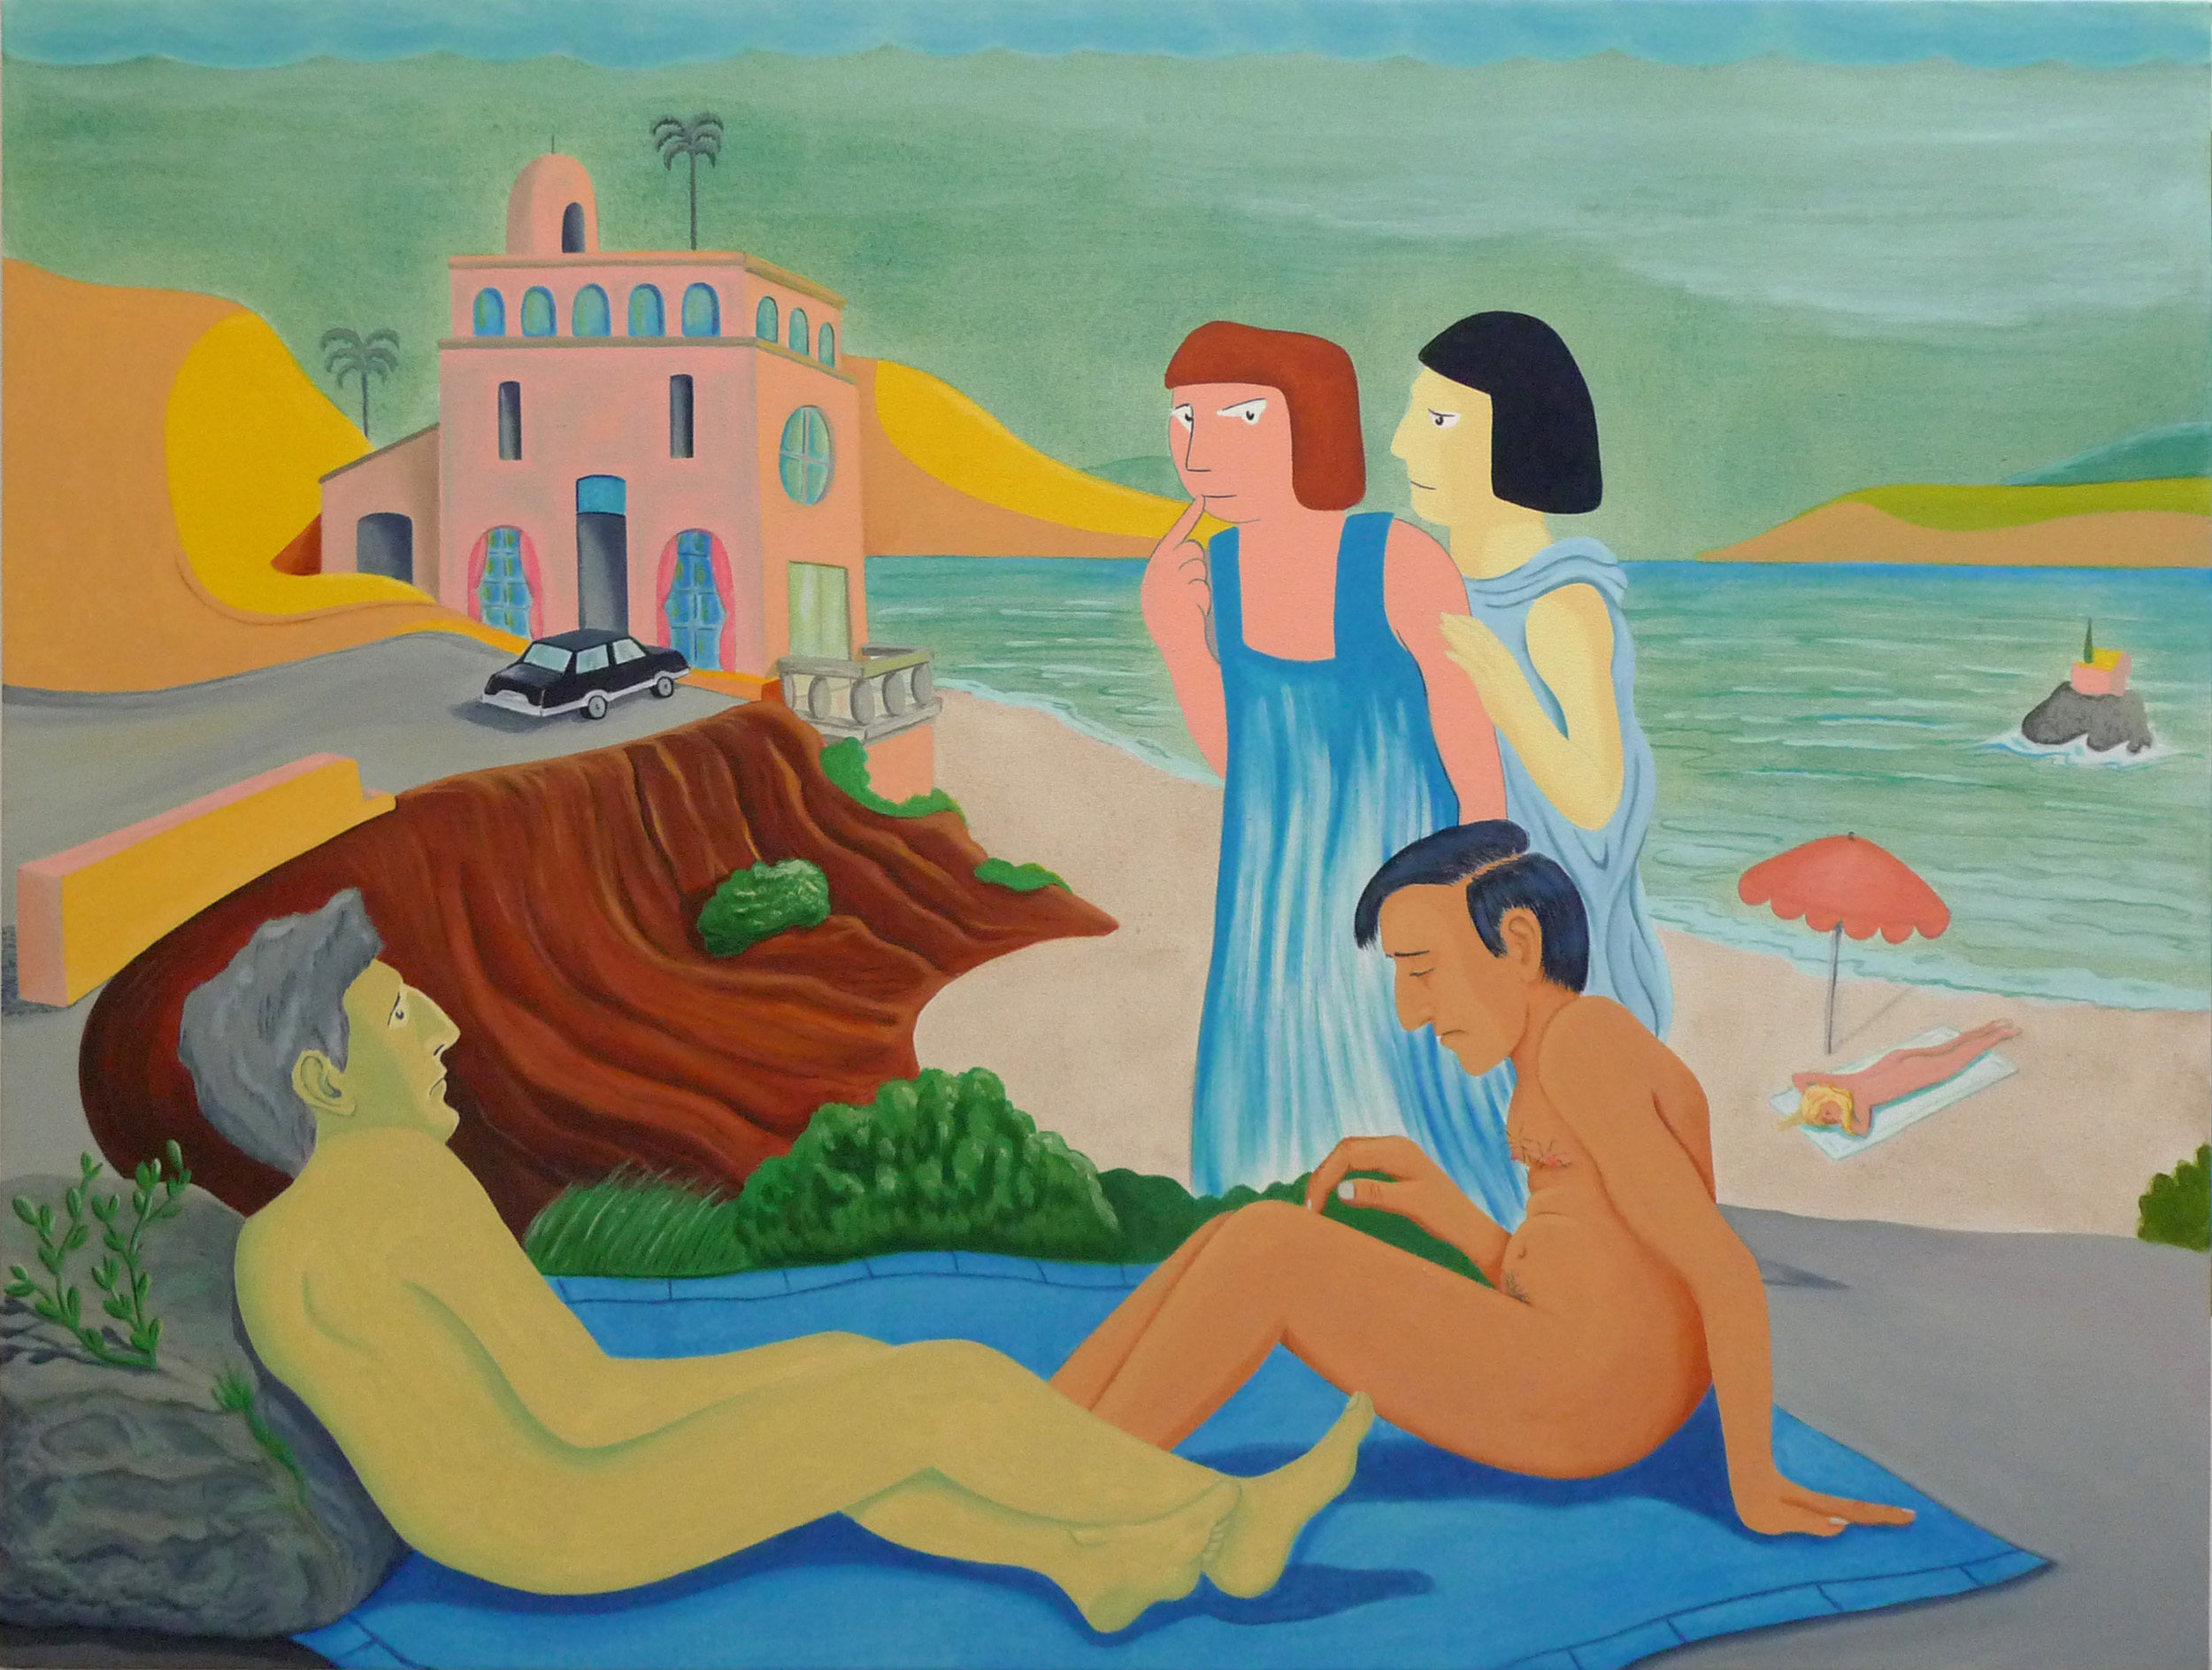 Questions to Answer on the Riviera  2017 Oil and acrylic on canvas, 91.5 x 120 cm